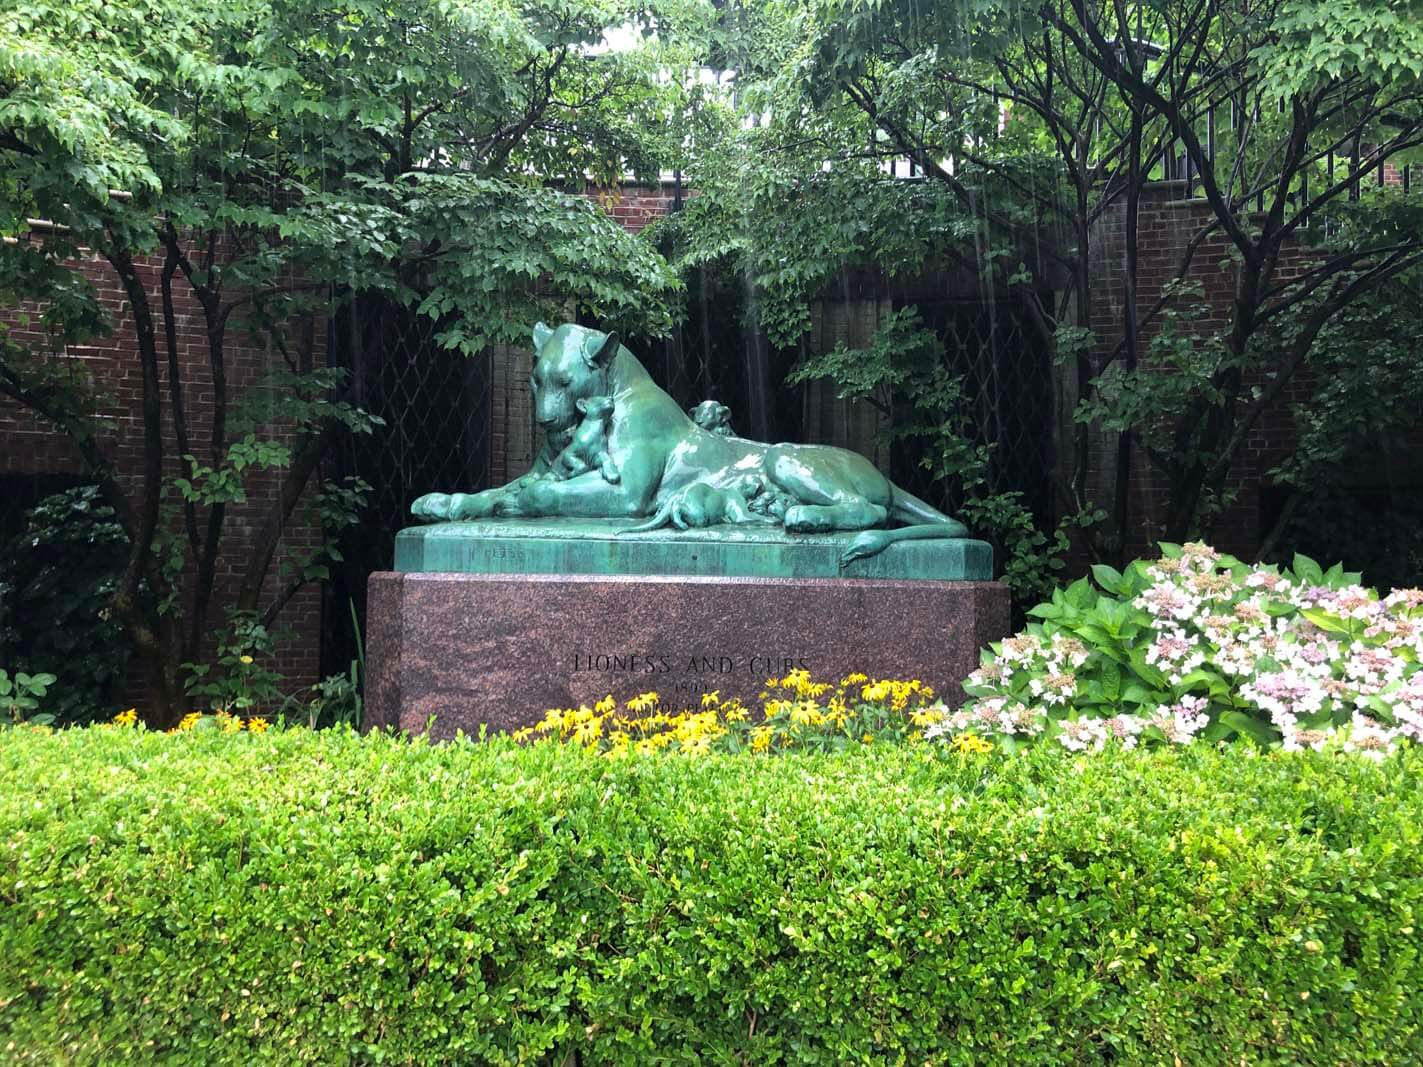 The lioness and her cub statue at Prospect Park Zoo